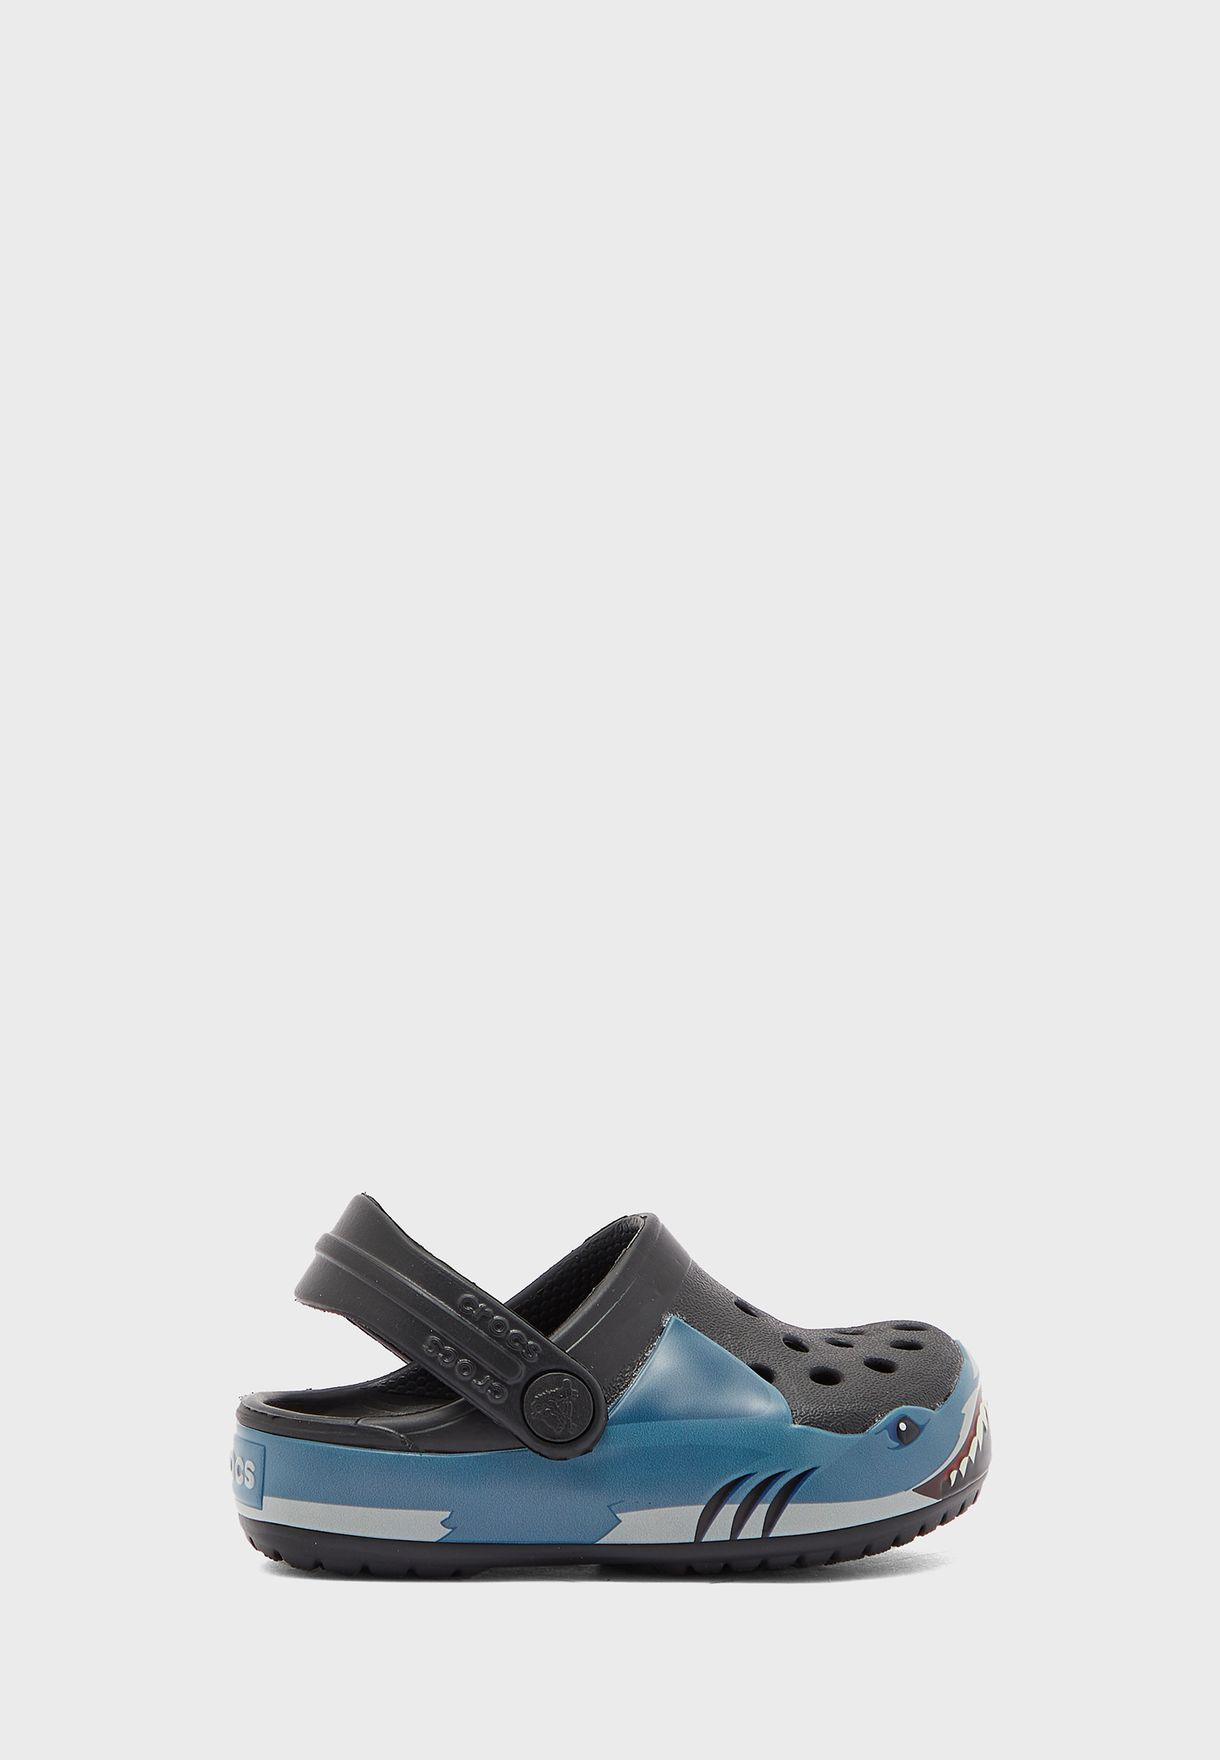 Kids Shark Band Sandal